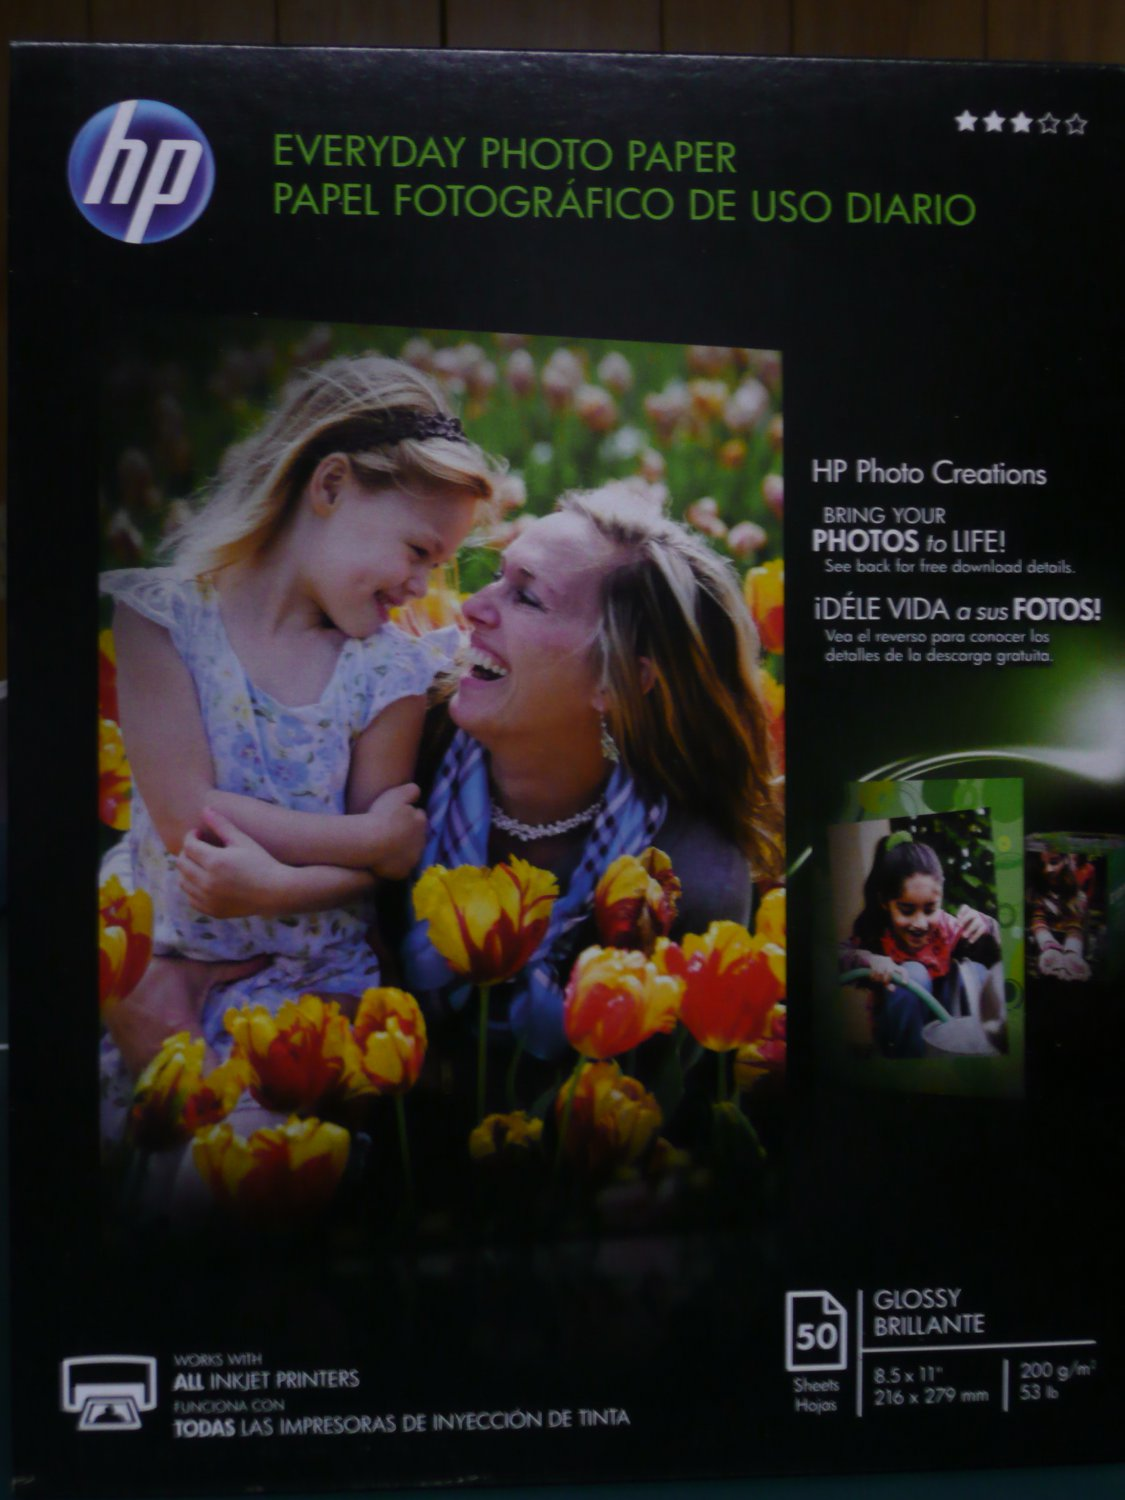 """Lot of 4 - HP Everyday Photo Paper, 8.5"""" X 11"""", Gloss, 50/pack (200 sheets total)"""